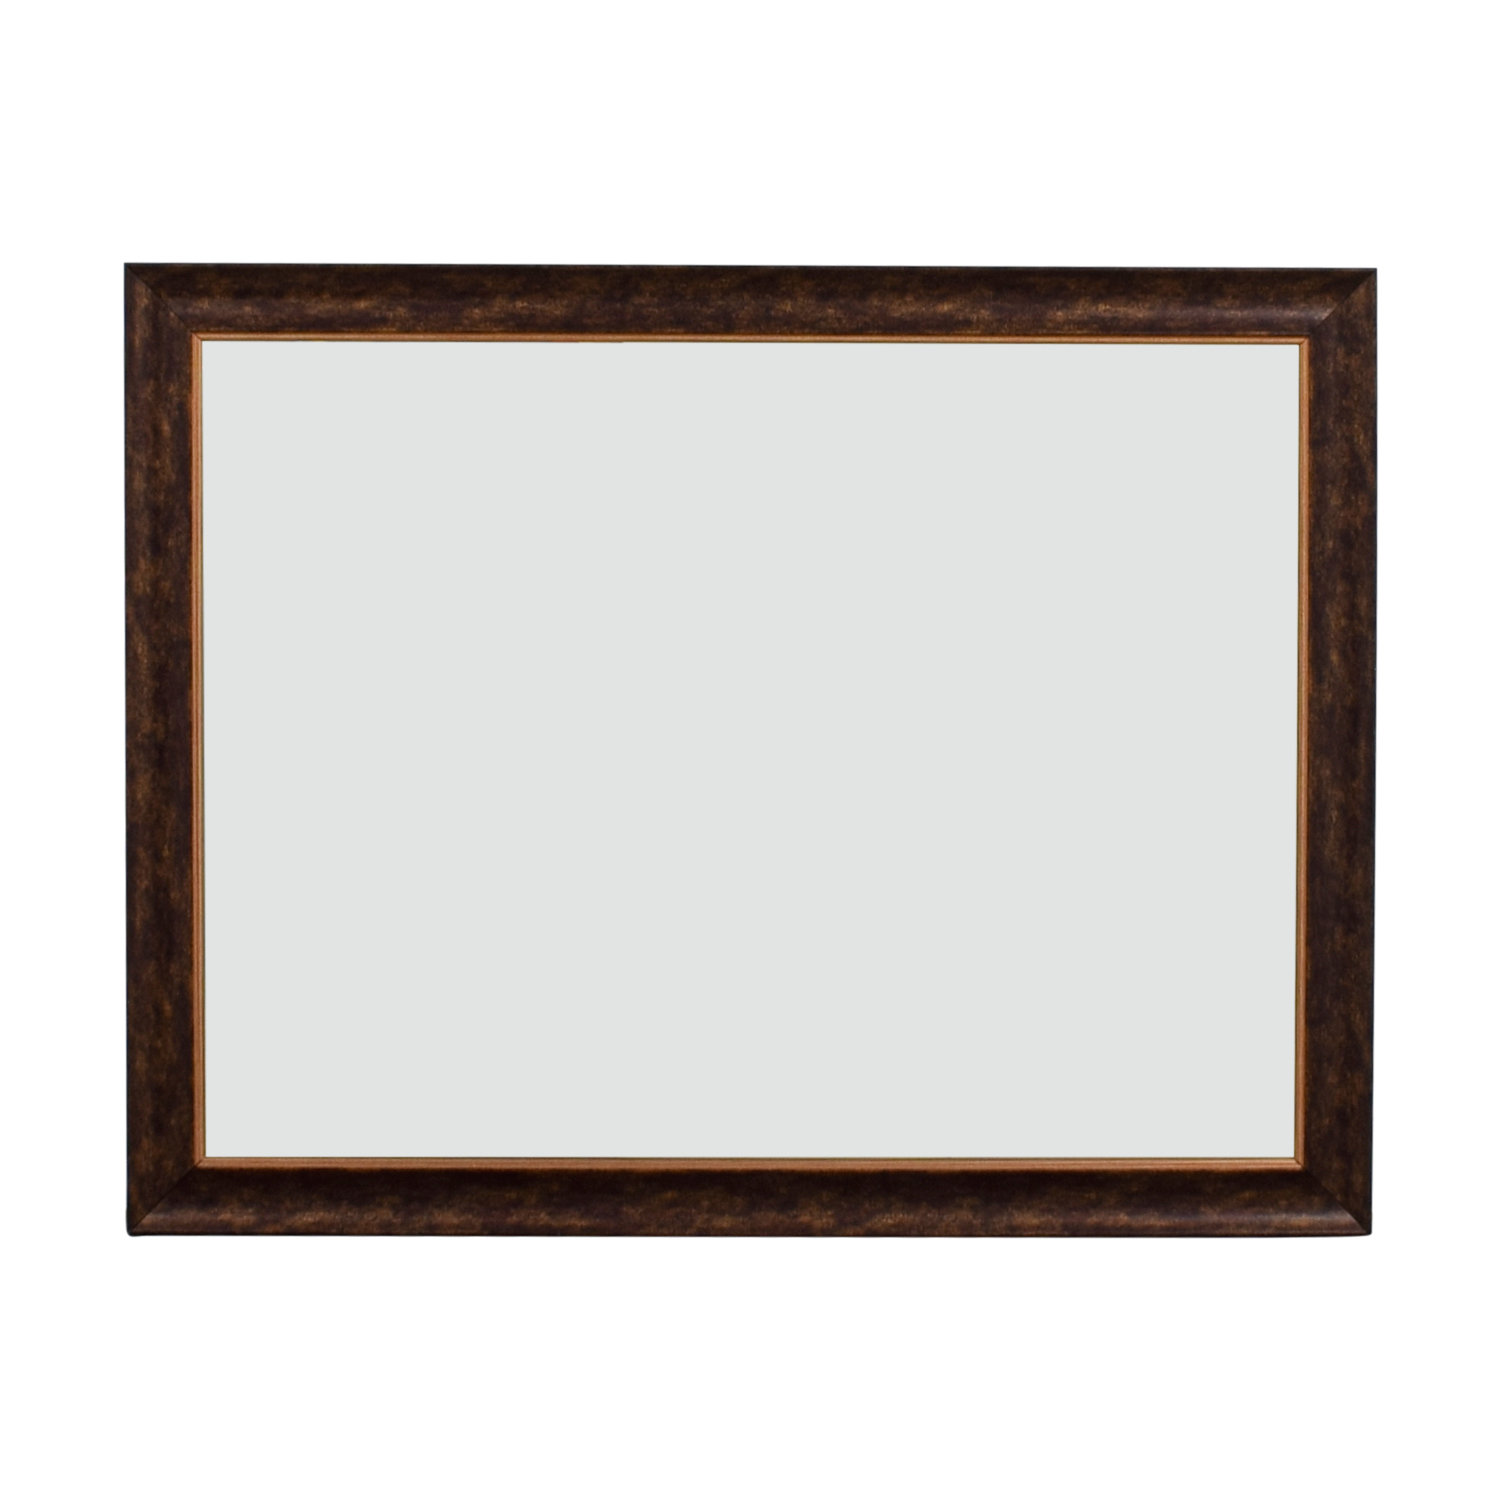 Bombay and Company Bombay and Company Rustic Beveled Mirror on sale